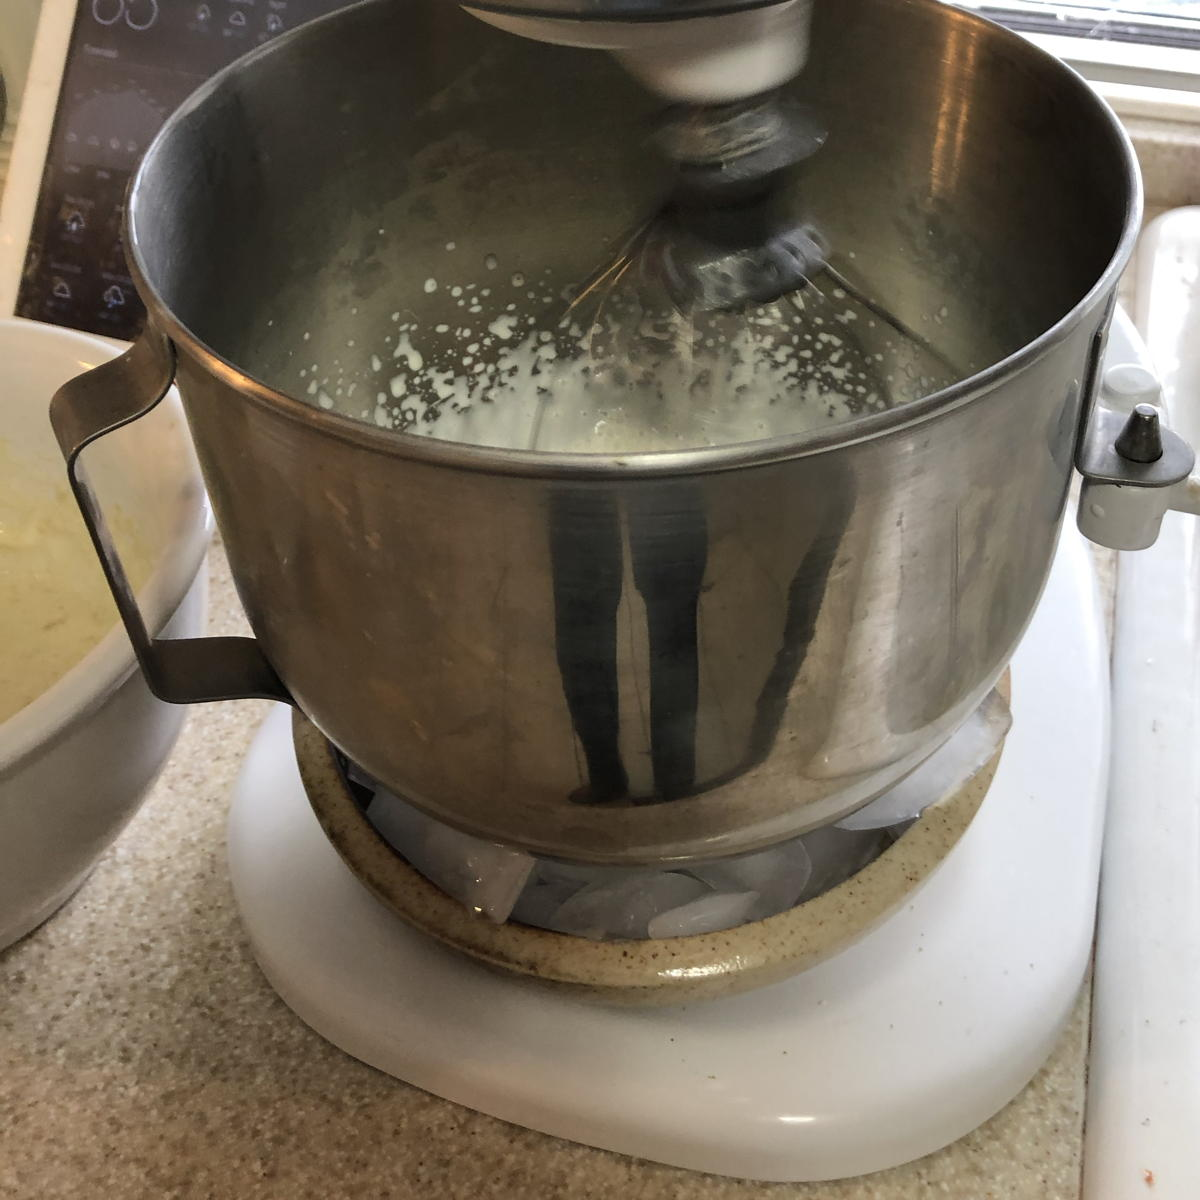 KitchenAid with ice bowl for whipping cream